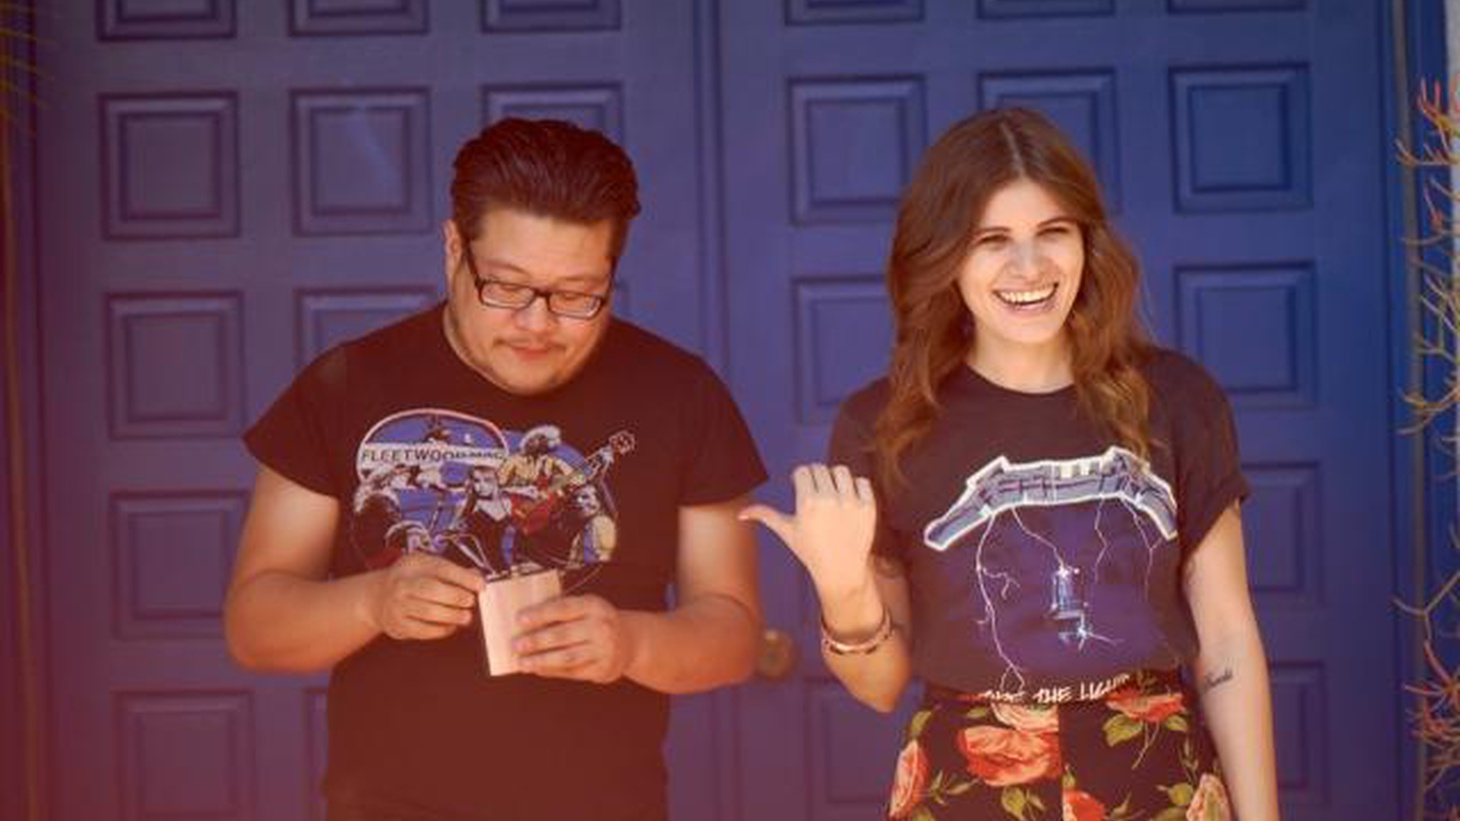 Best Coast will bring the sunshine into KCRW's basement studios with a collection of catchy new songs that showcase Bethany Cosentino's love affair with California.